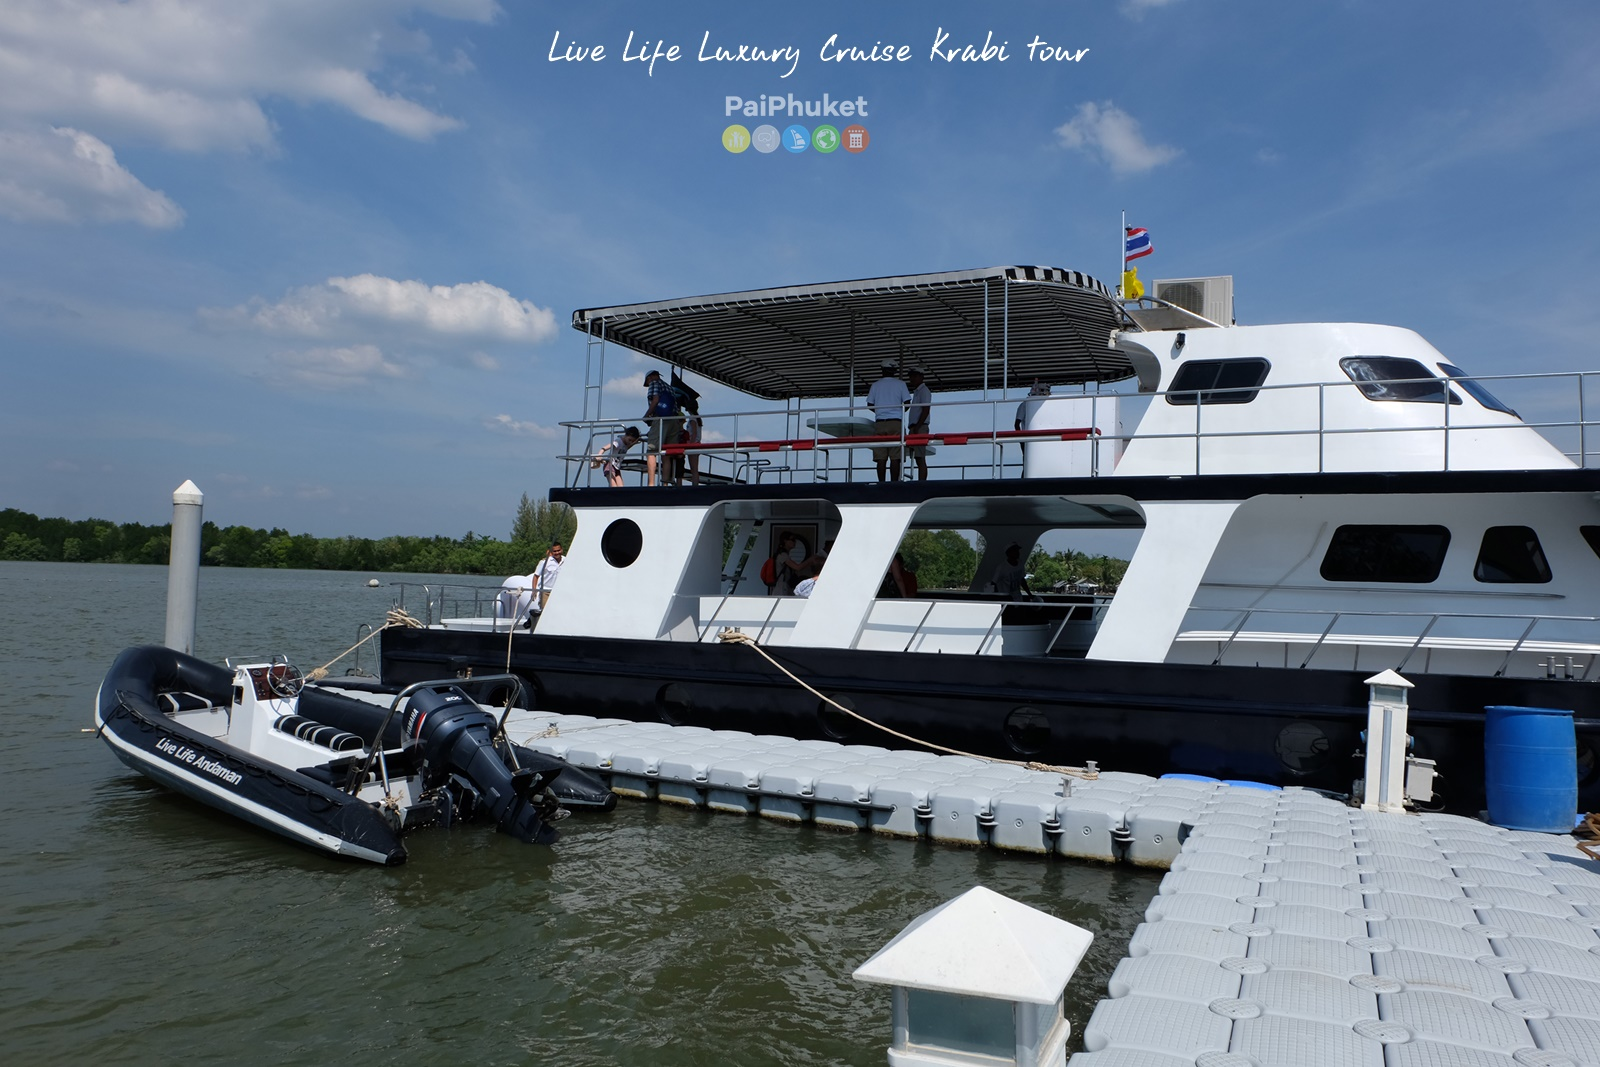 tour-krabi-live-life-luxury-boat-19